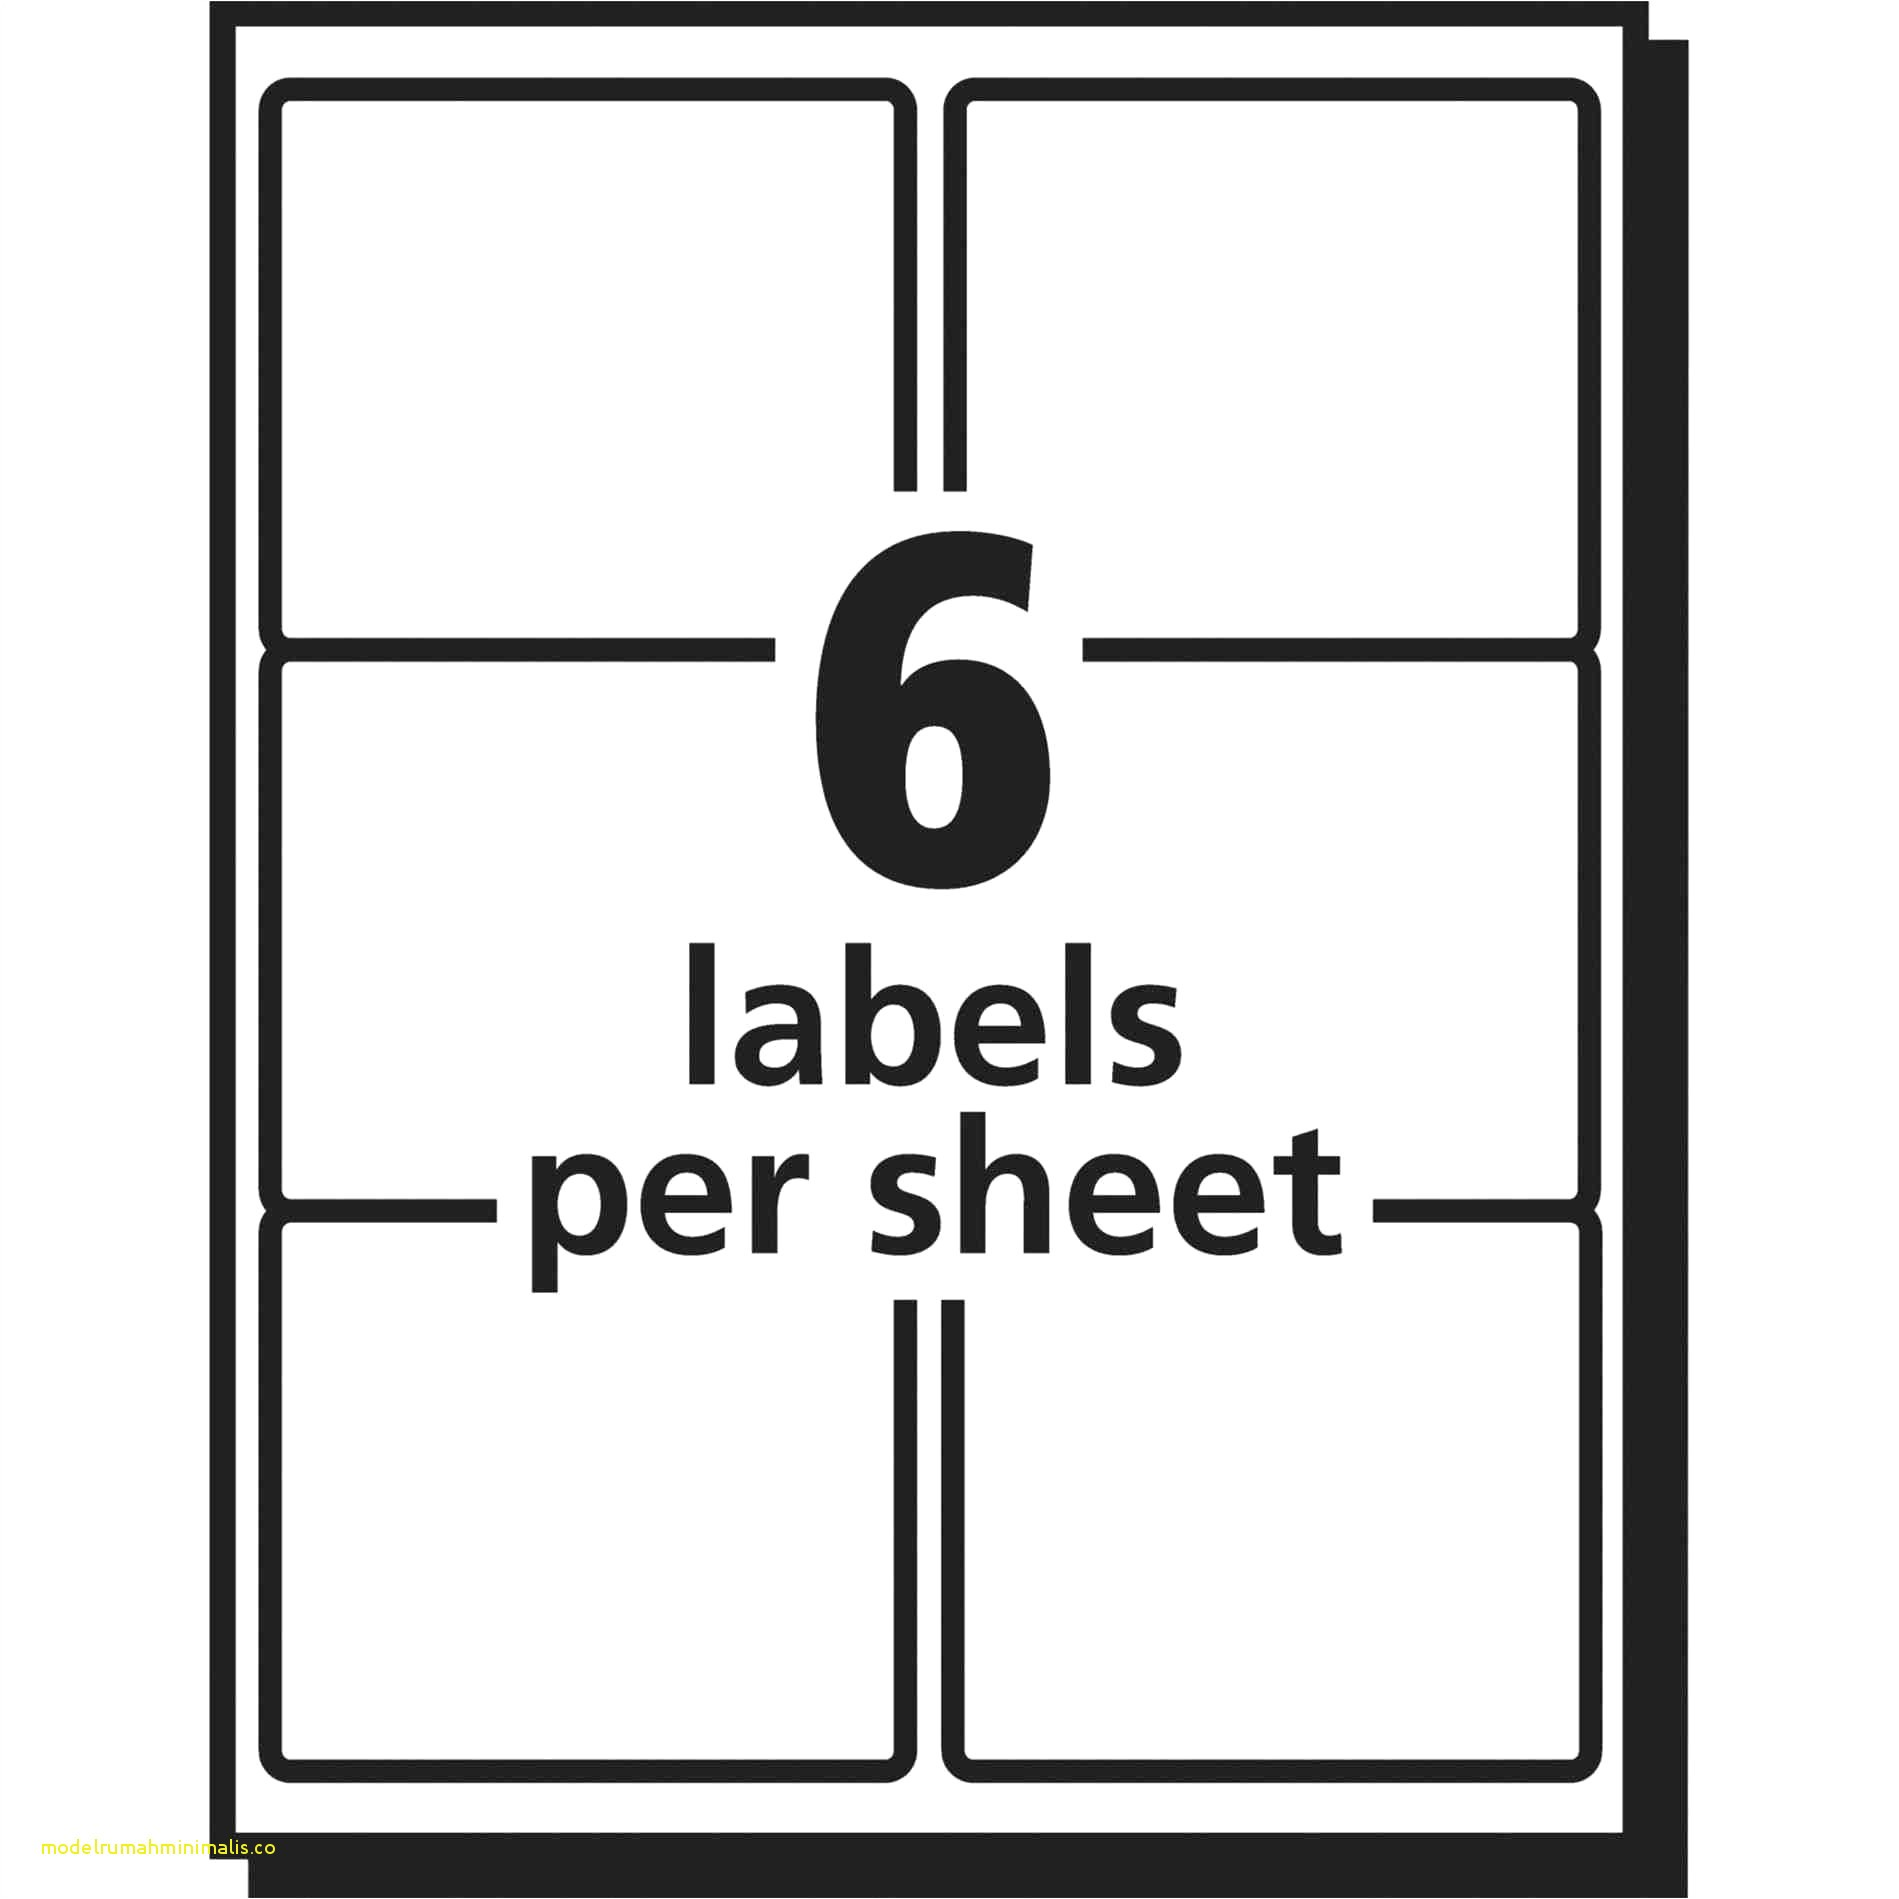 Avery Name Badge Template 6 Per Sheet top Result Avery Template 5164 Word Best Of Template 5395